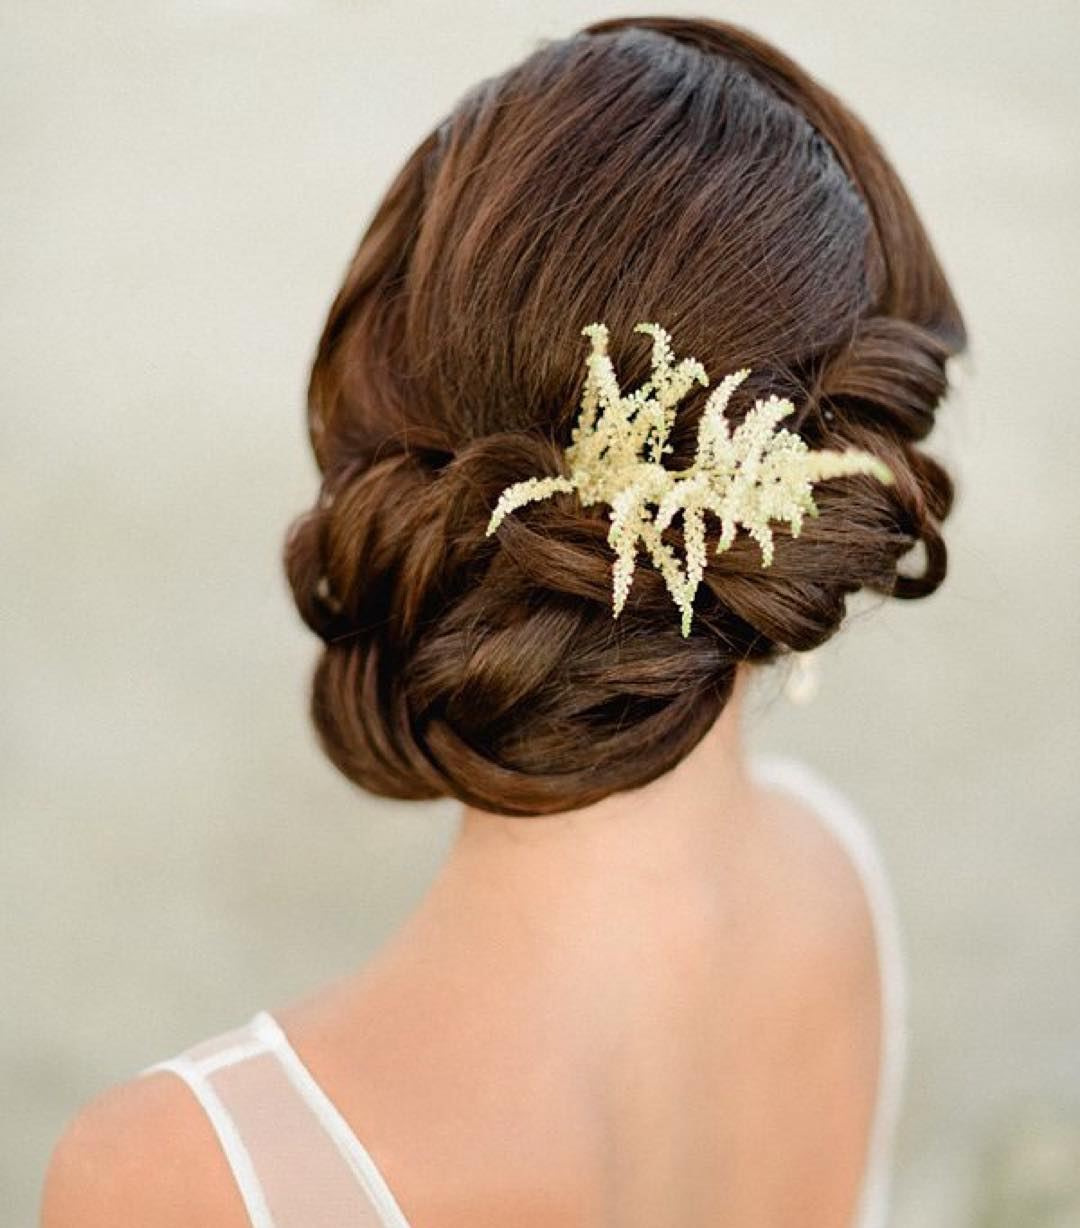 Wedding Hairstyle Photos: 30+ Beach Wedding Hairstyles Ideas, Designs